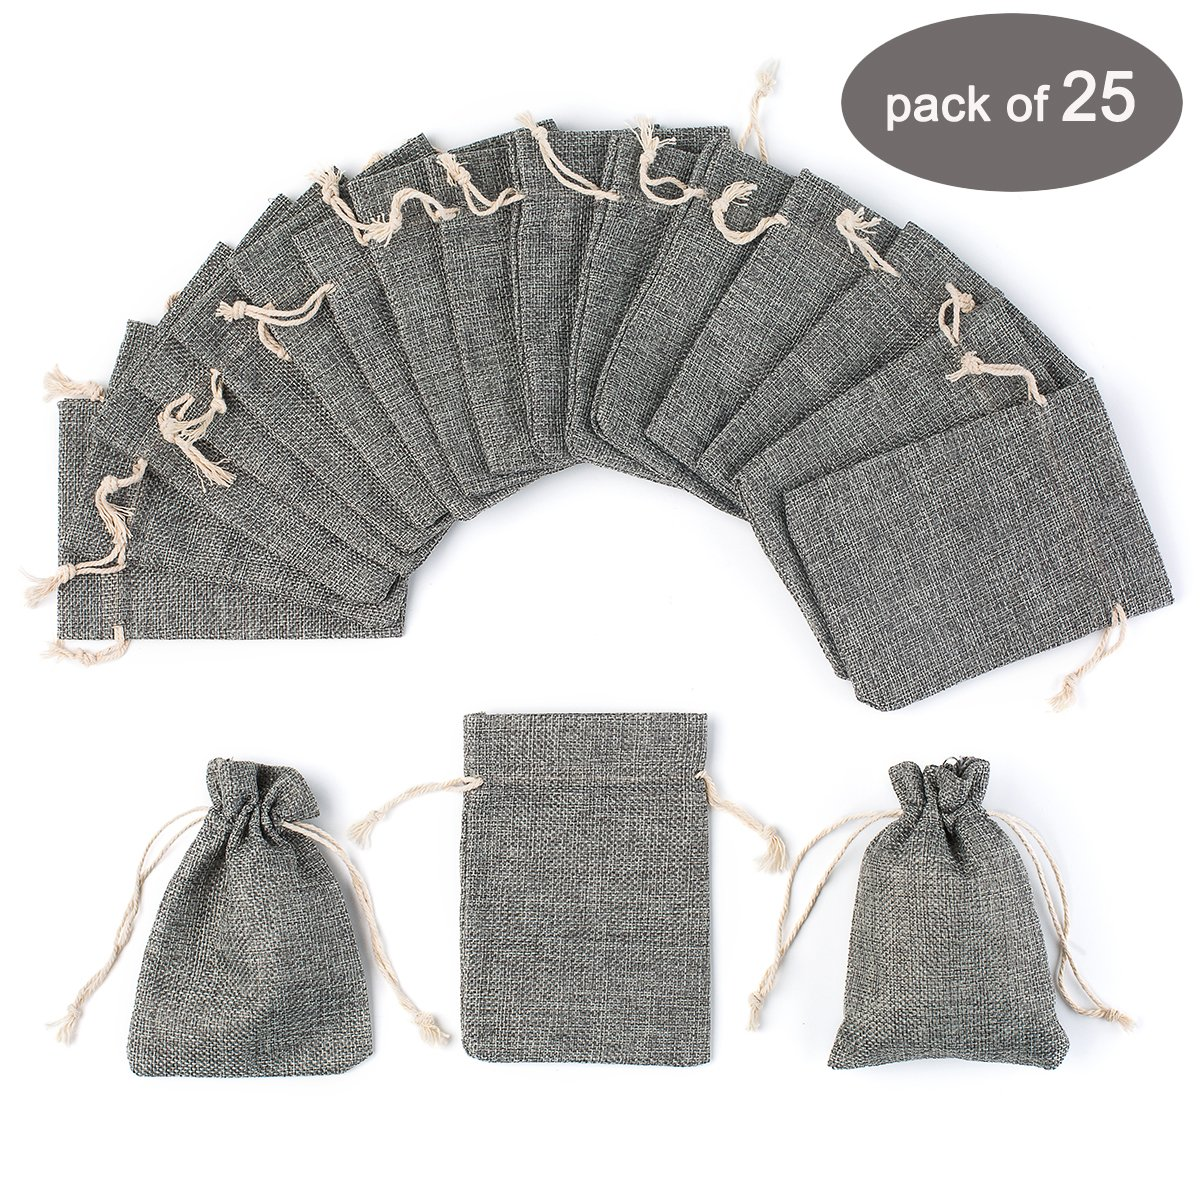 Amazon.com: Mudder Burlap Bags with Drawstring Gift Bags for Wedding ...